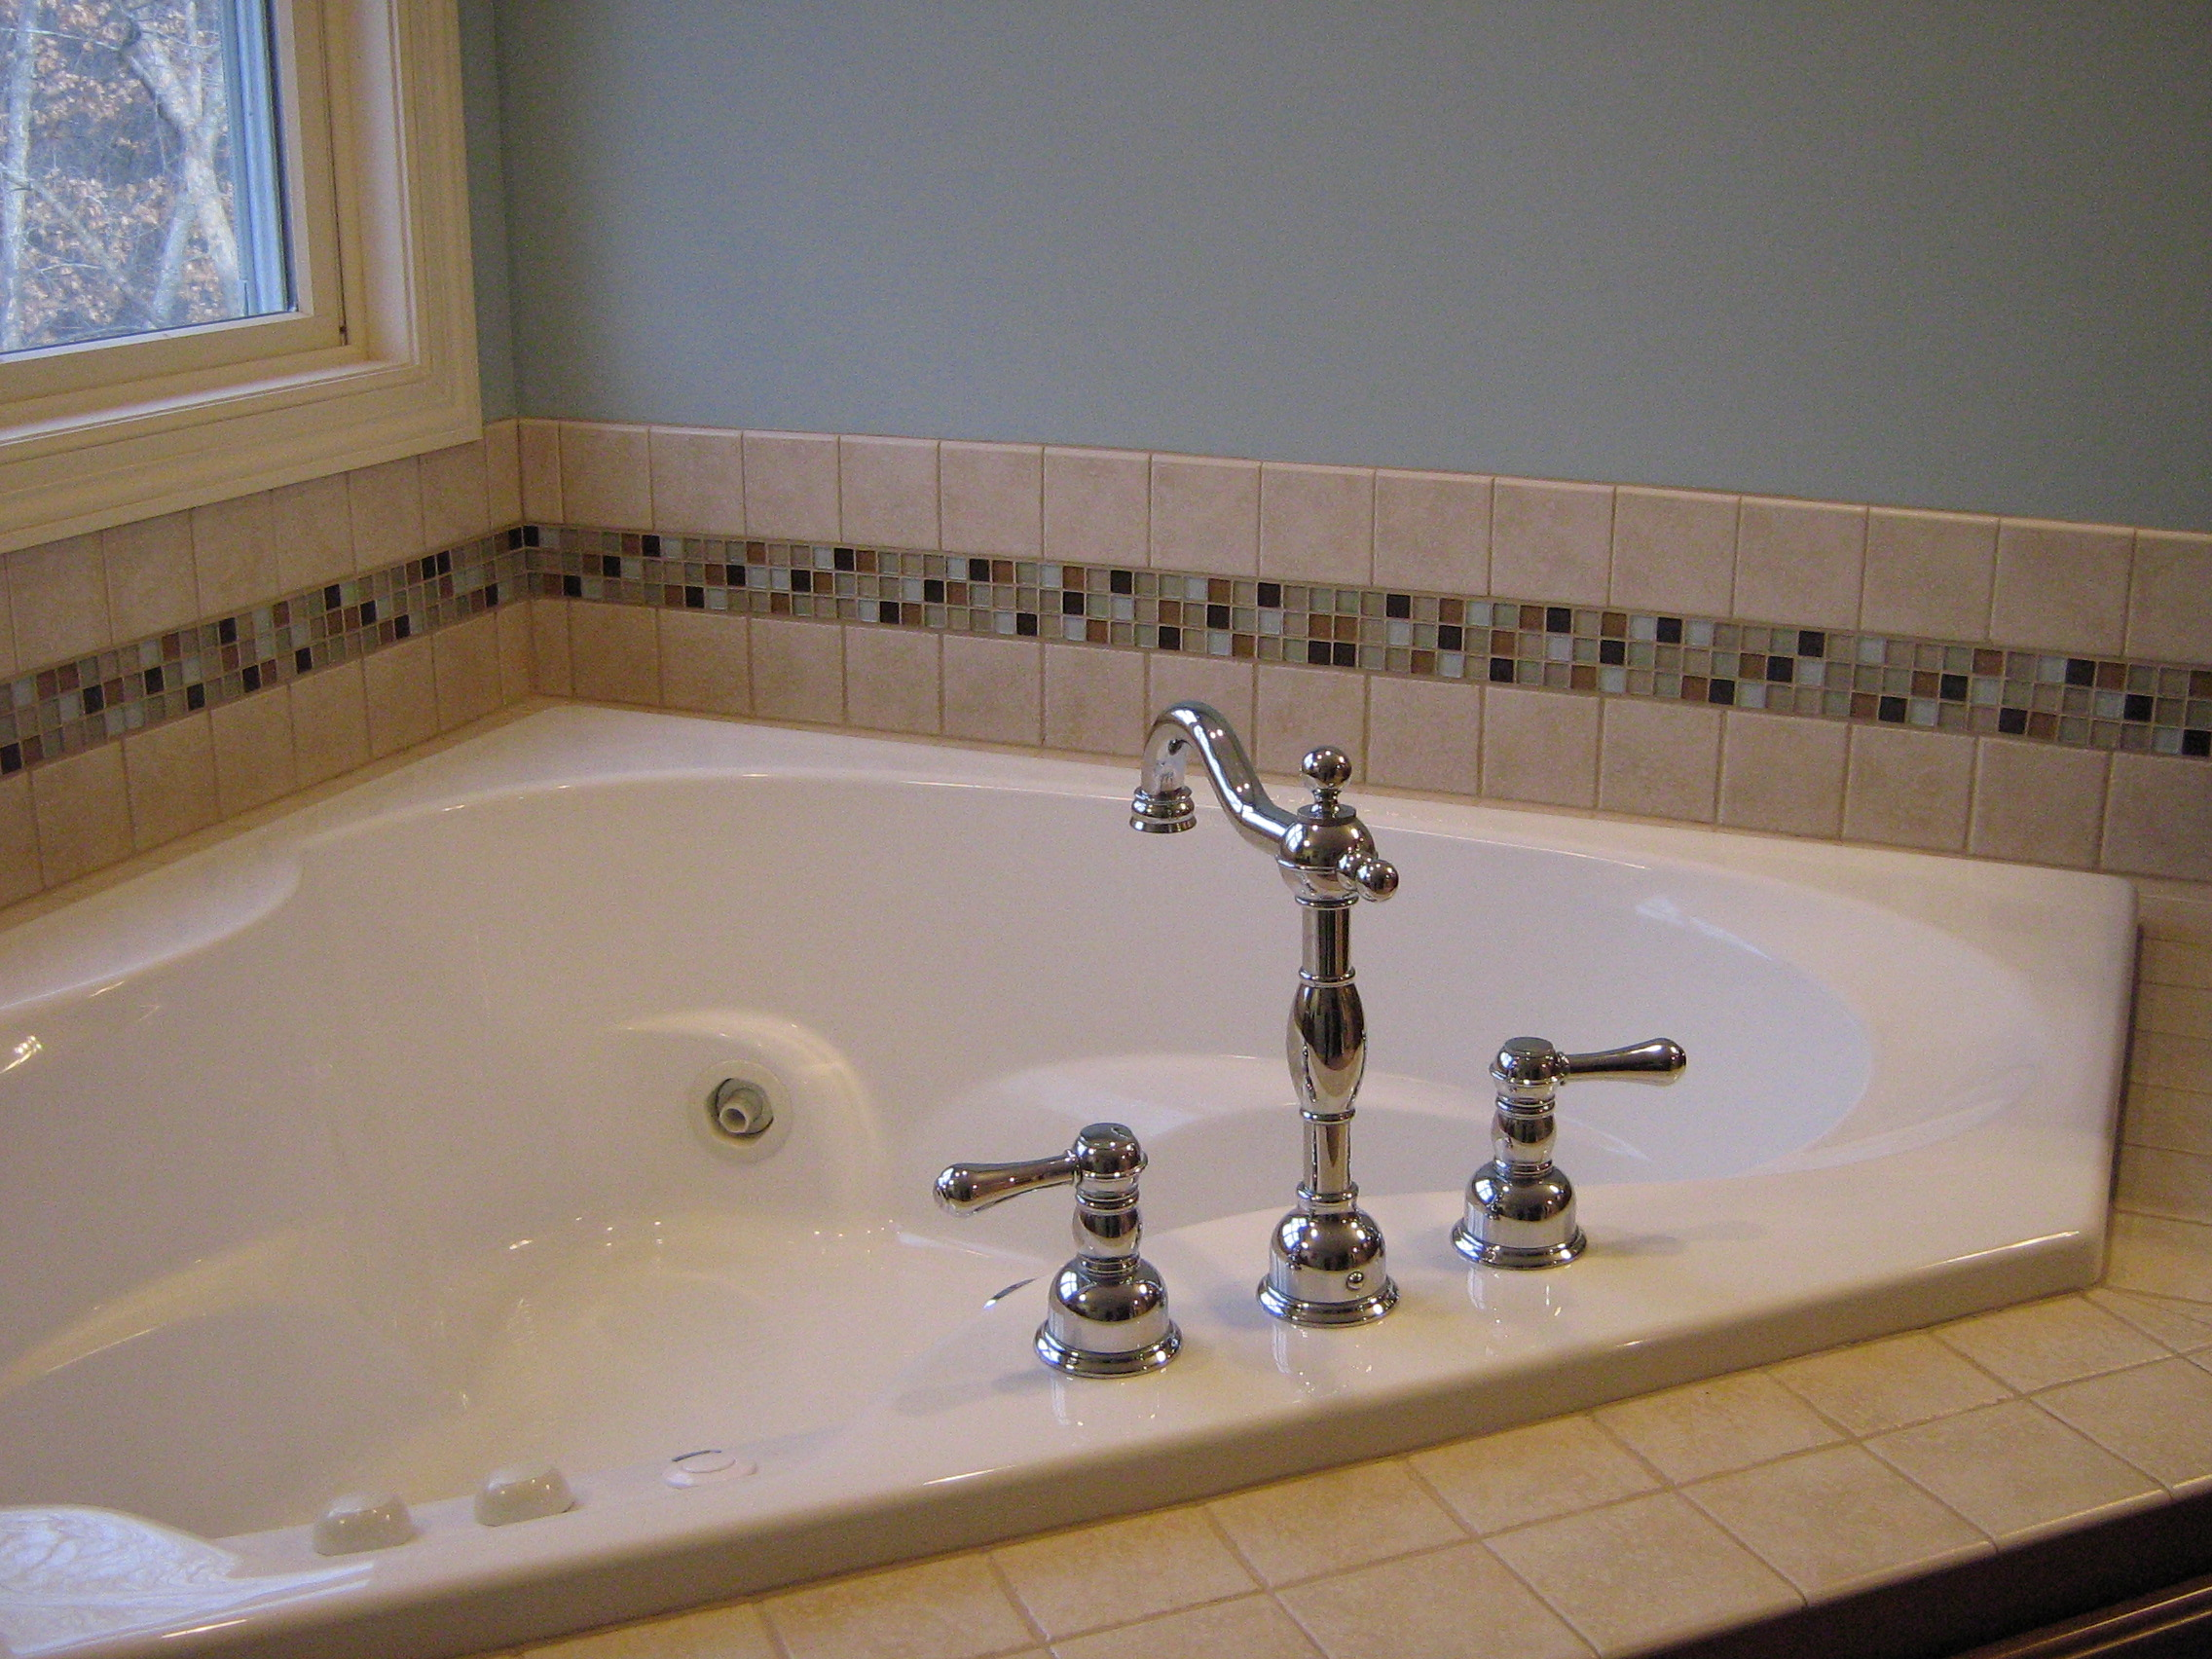 Tile t larsen design llc for Glass tile border bathroom ideas